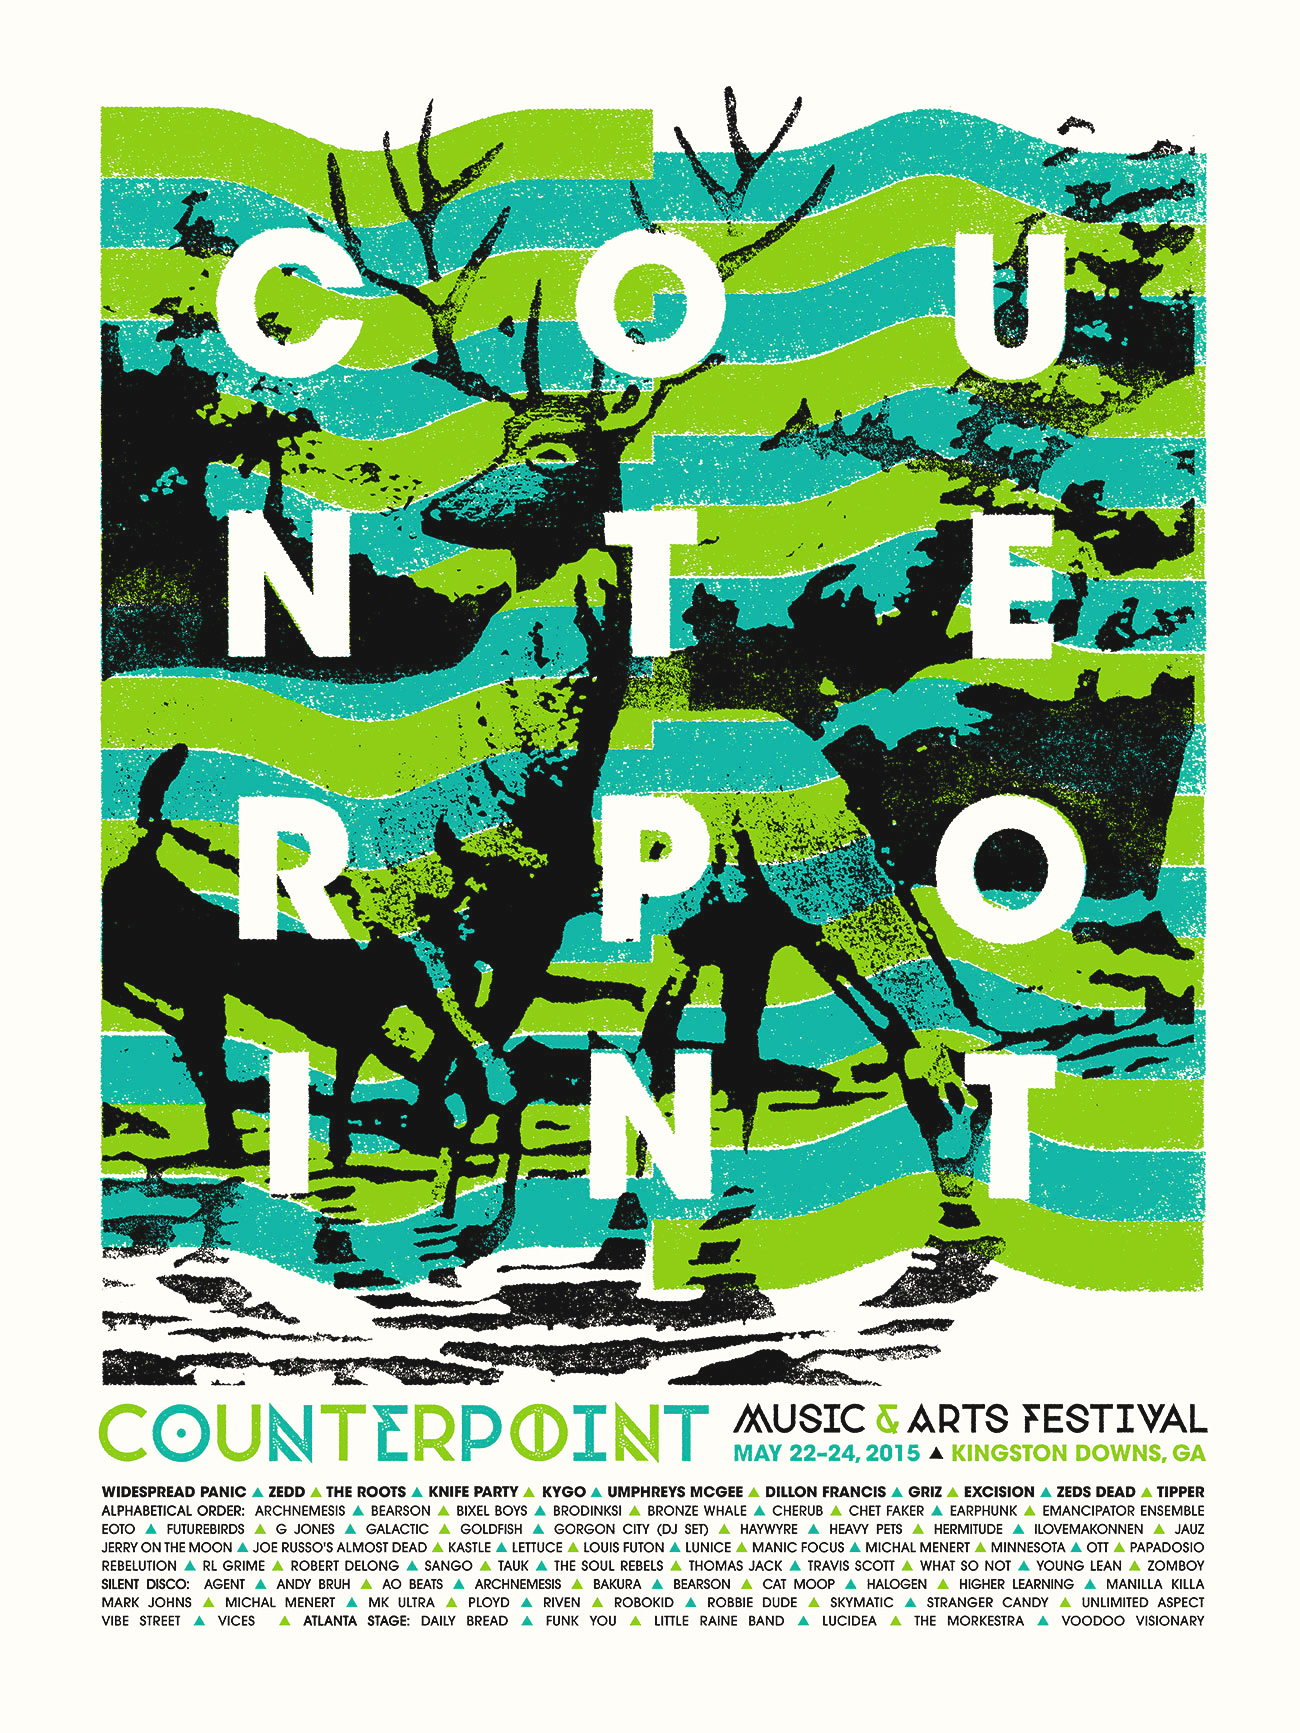 counterpoint festival  commemorative poster